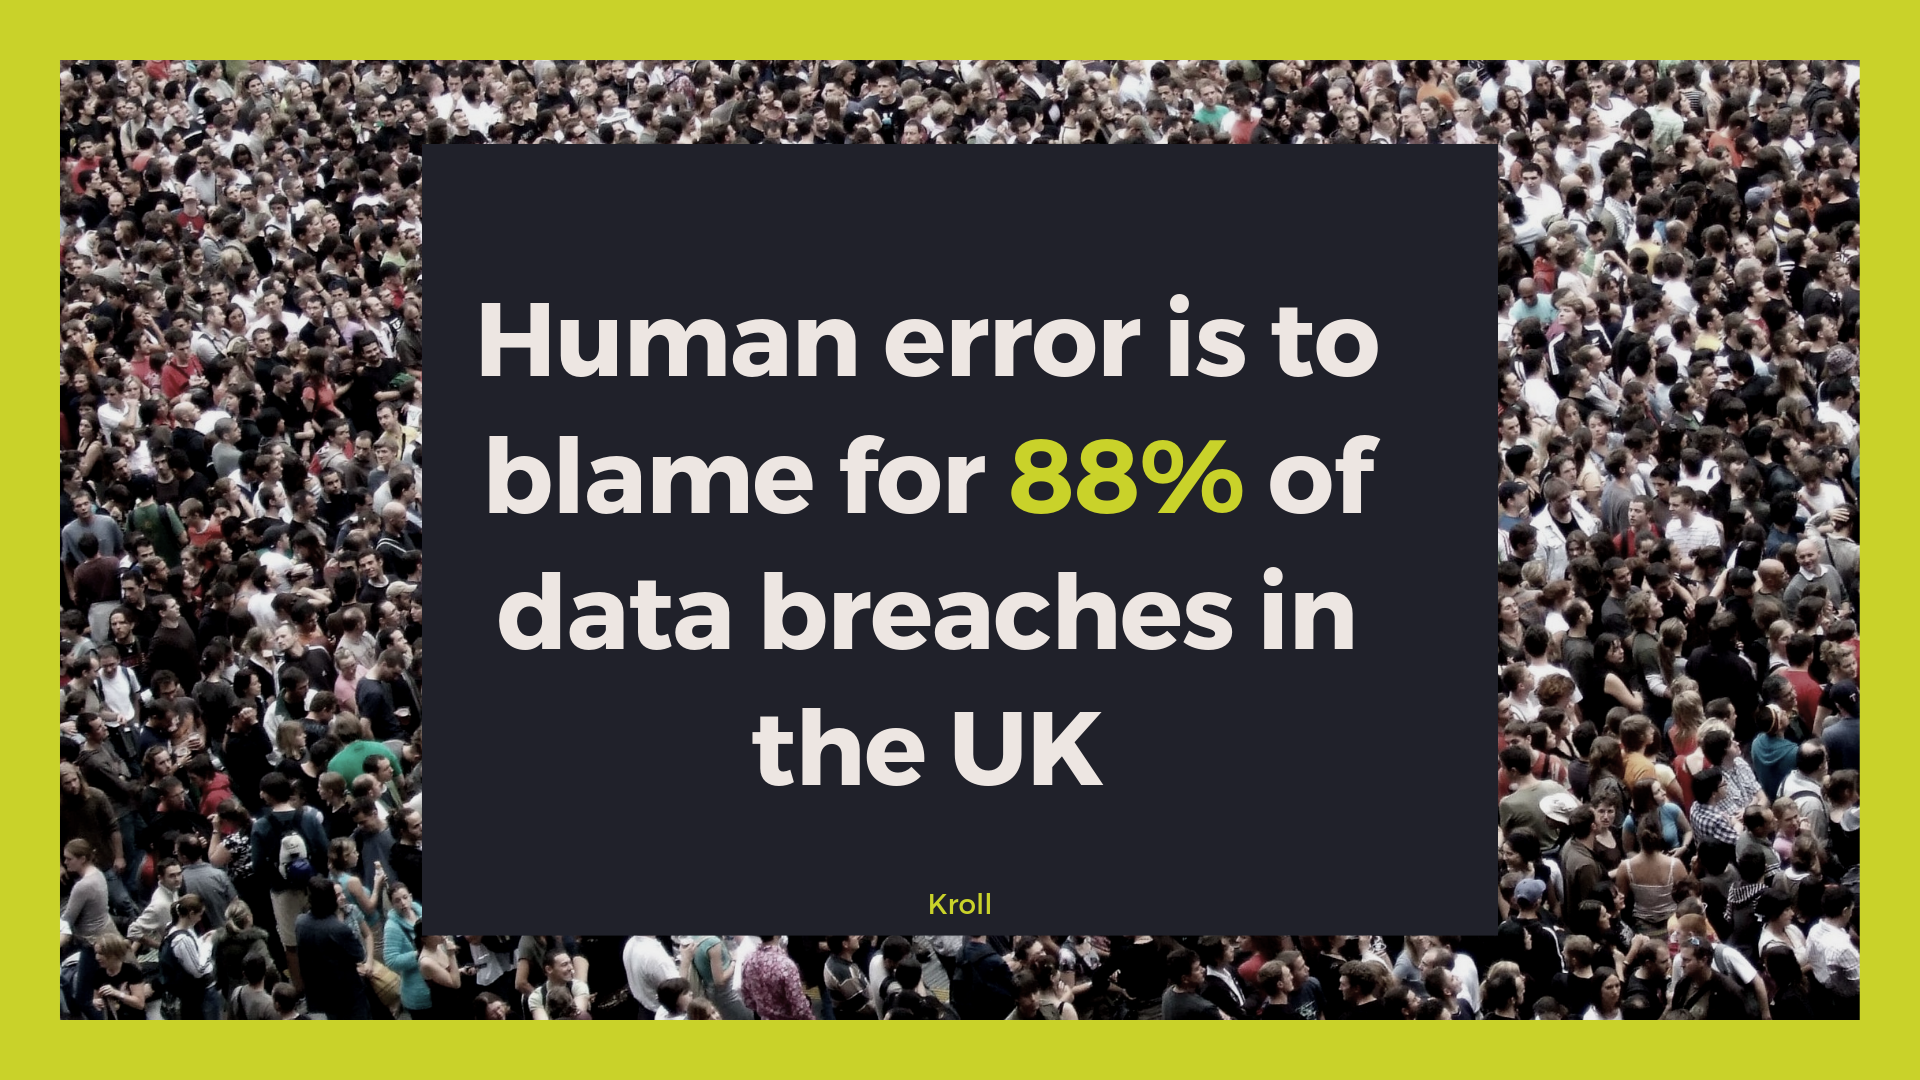 Human error is to blame for 88% of data breaches in the UK